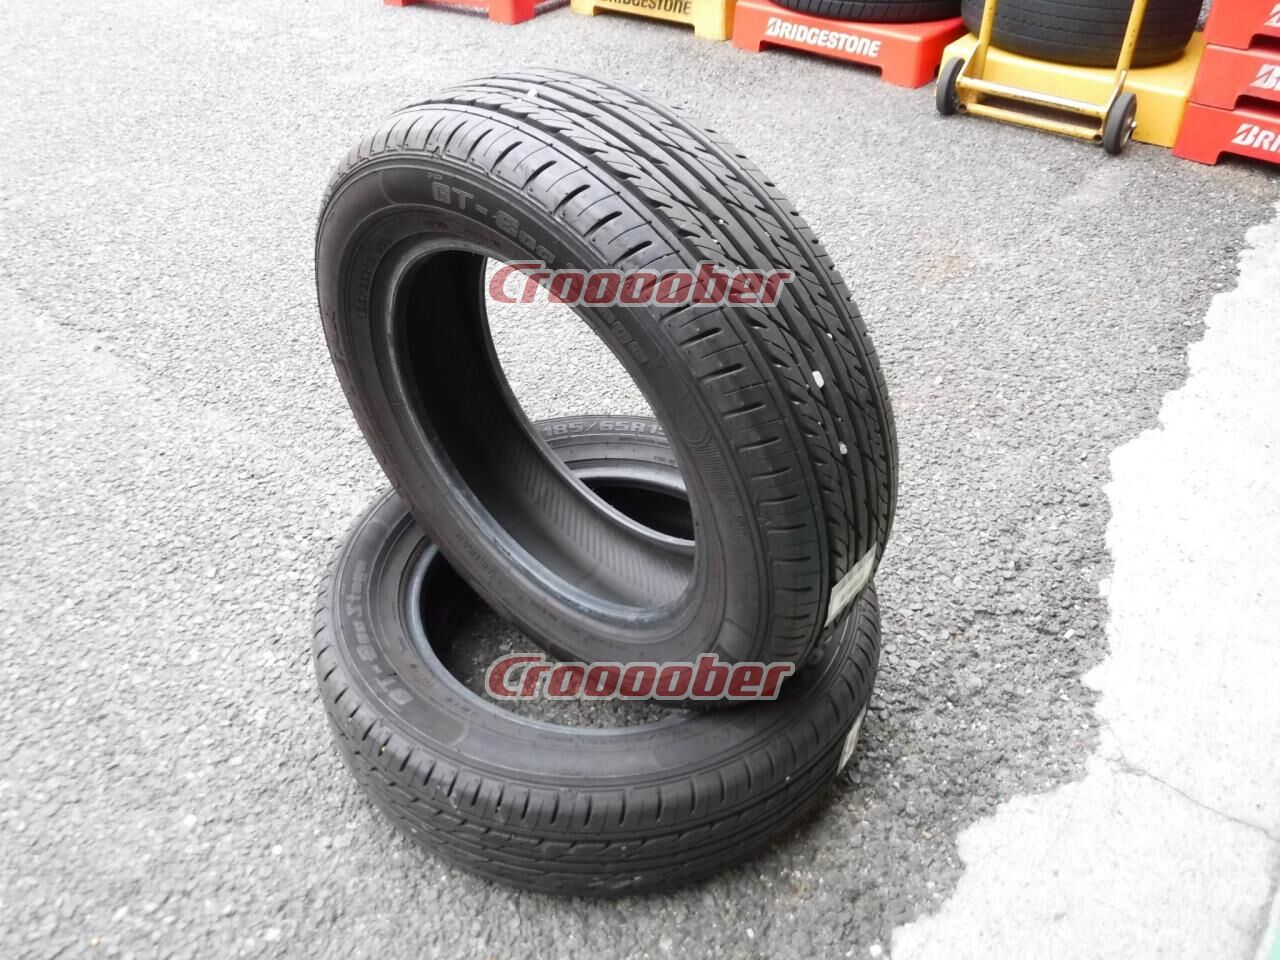 15 Inch Tires >> Set Of 2 Goodyear Gt Eco Stage 15 Inch Tire Croooober